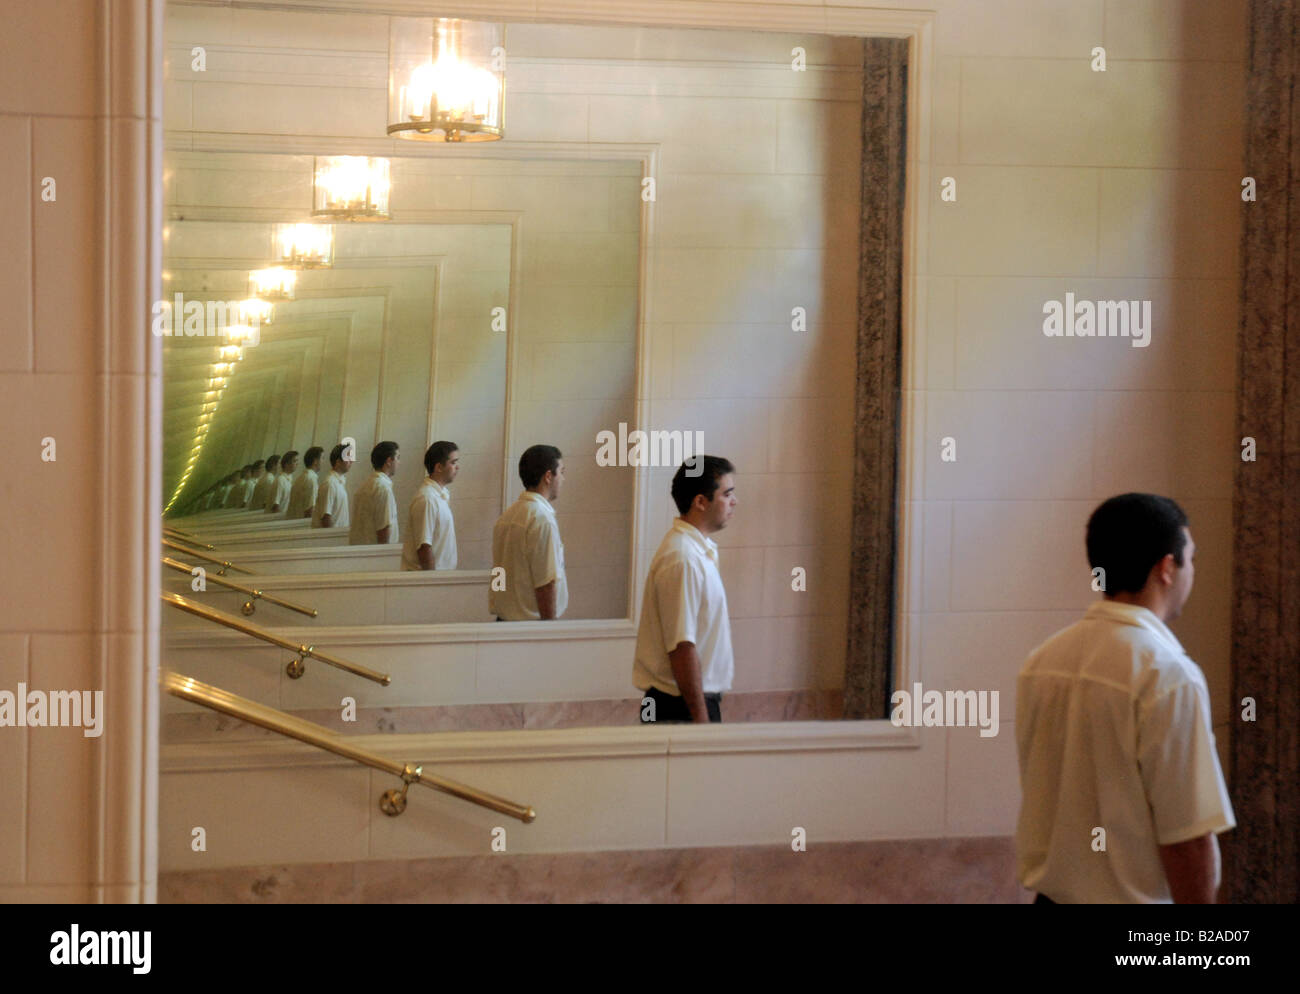 Infinite crystal mirror image reflection stock photo for Reflection miroir